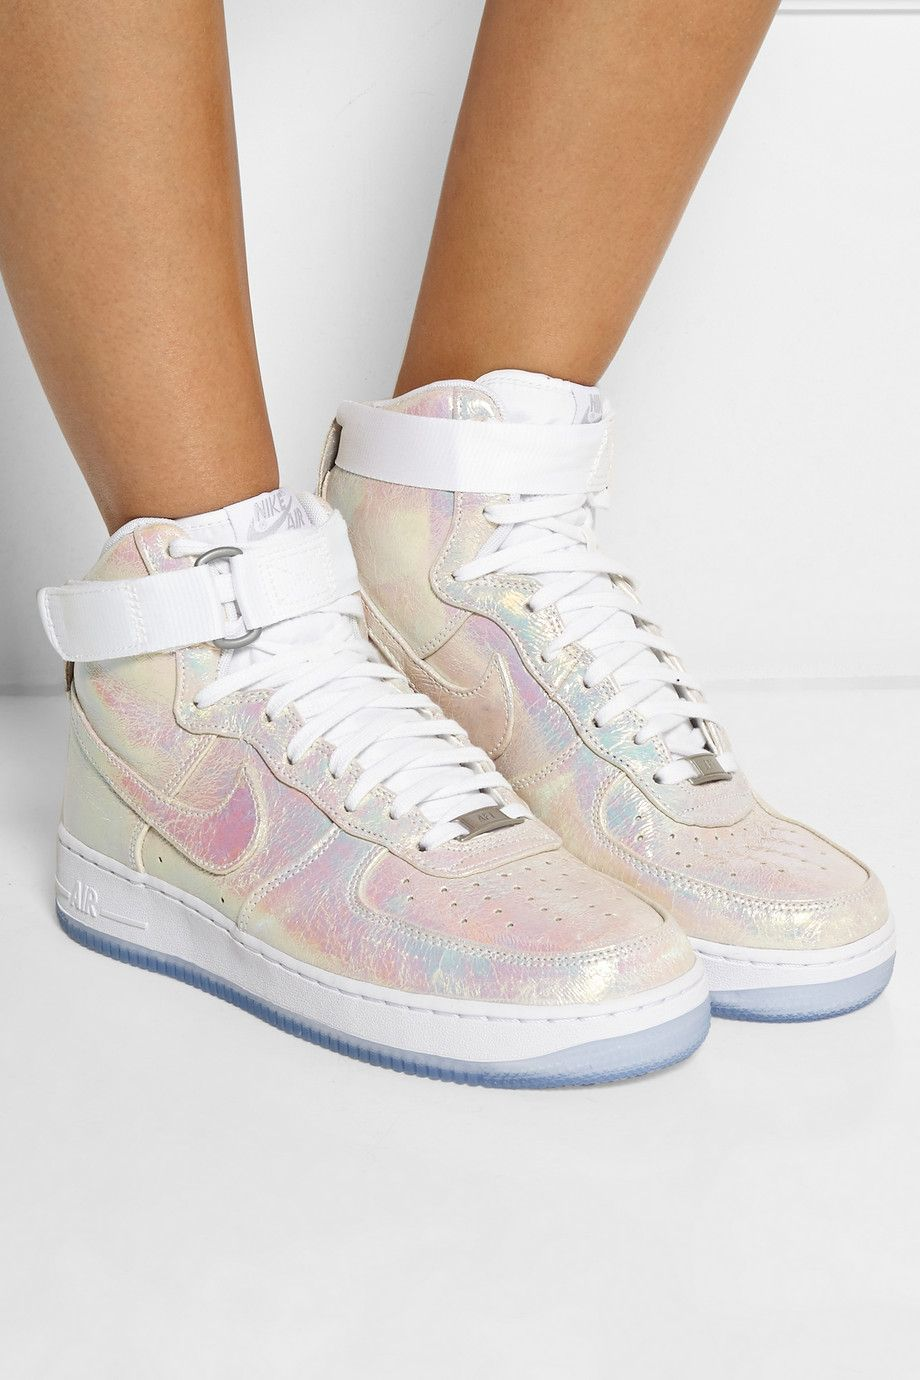 Le Meilleur Nike Air Force 1 Leather High Top Sneakers Net A Ce Mois Ci